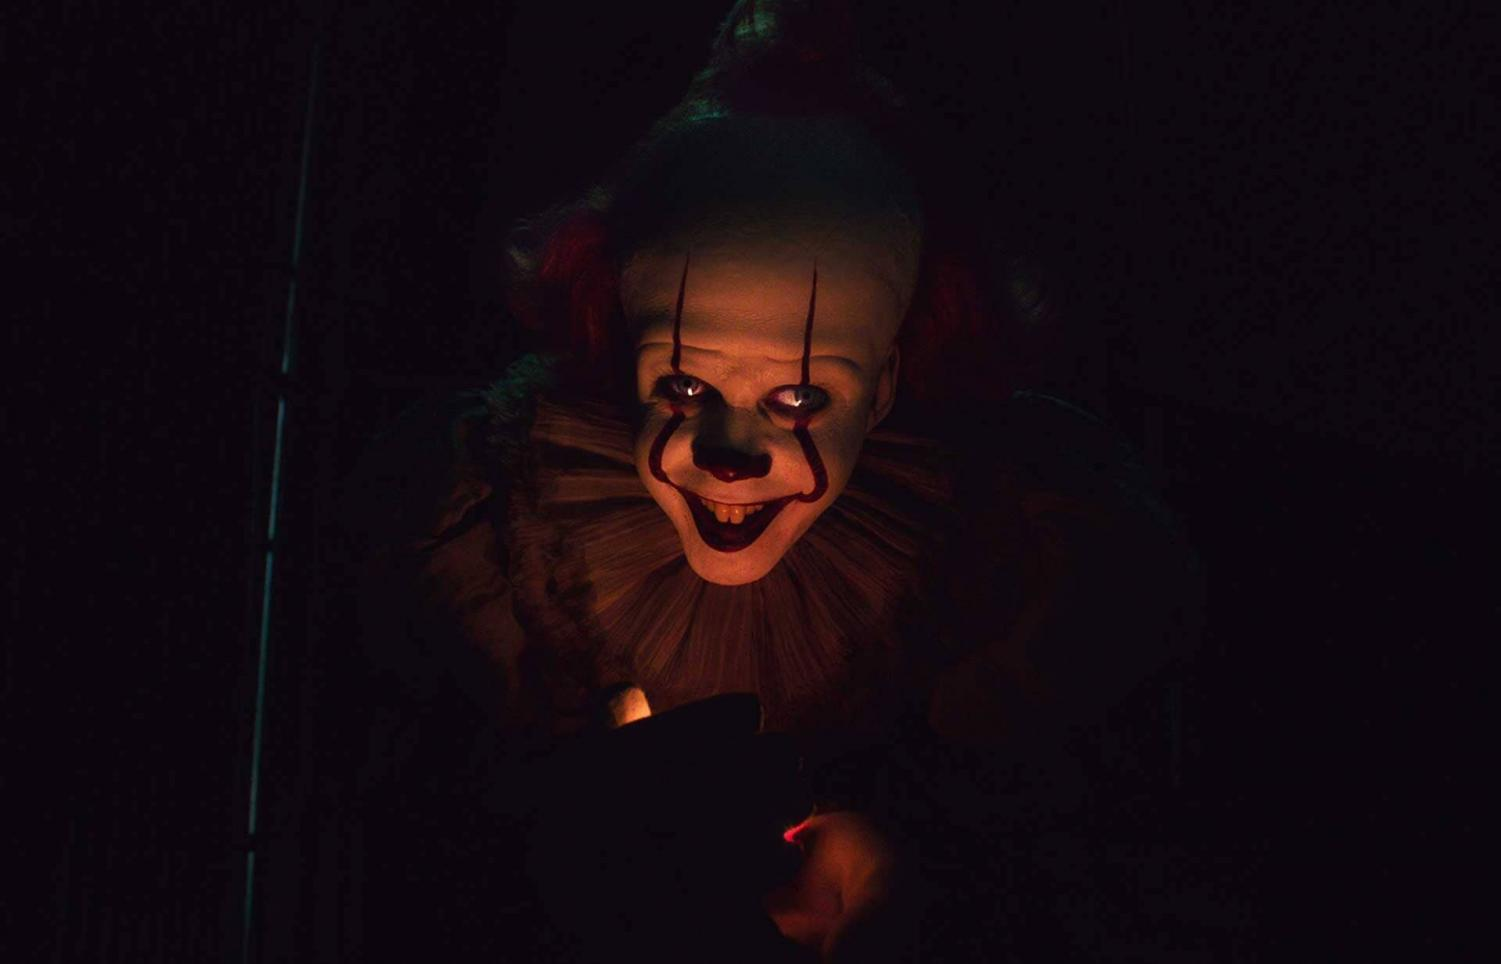 Warner Bros. released It: Chapter Two on Sept. 6, 2019.  It was distributed worldwide and is still in movie theaters.